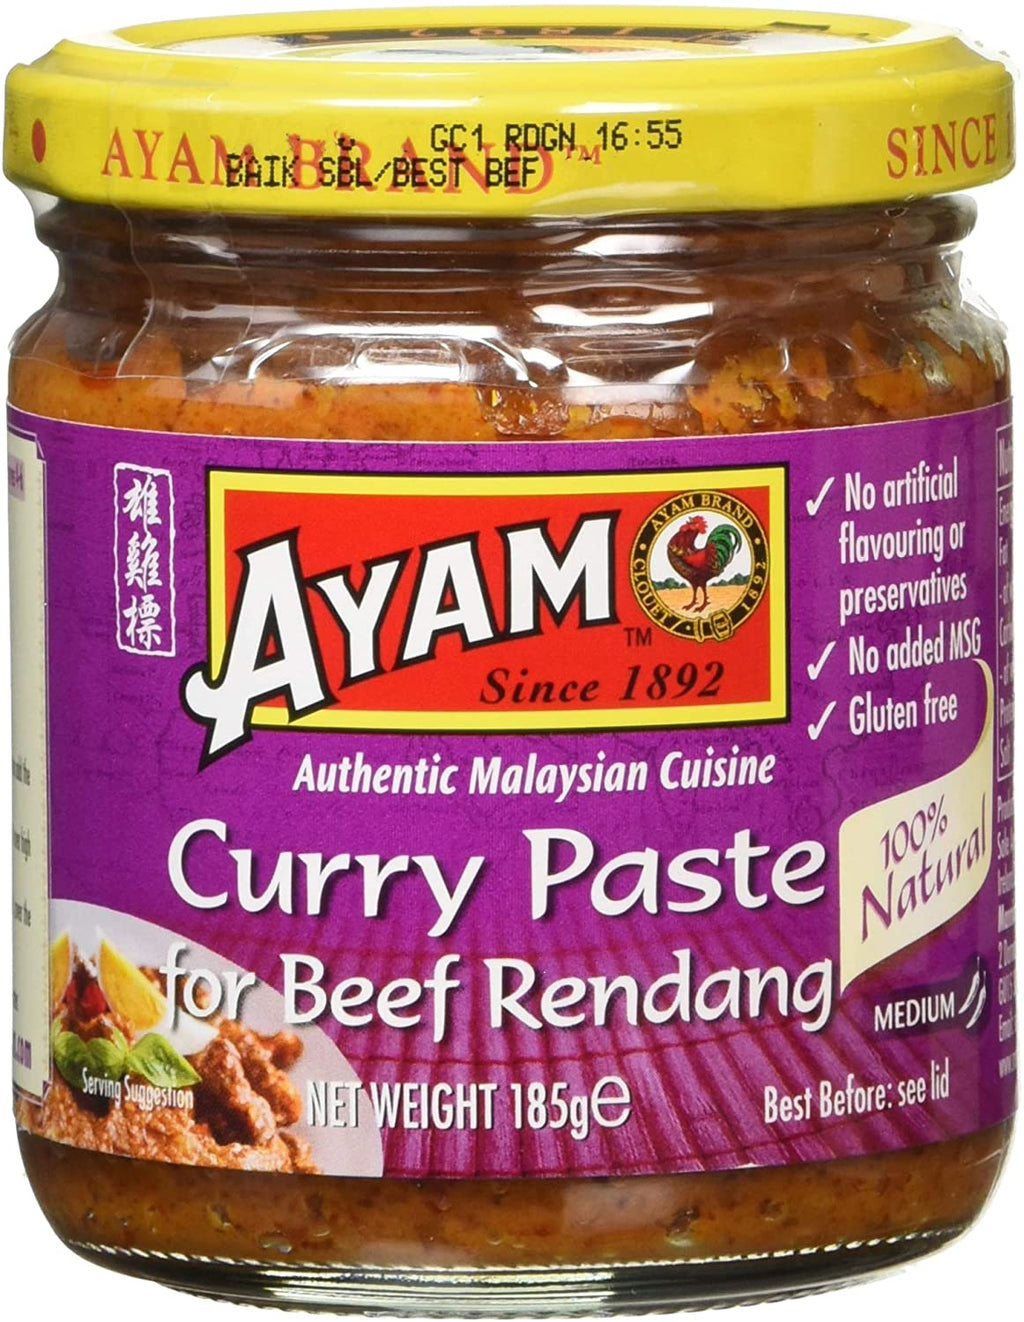 Rendang Curry Paste 185g by Ayam